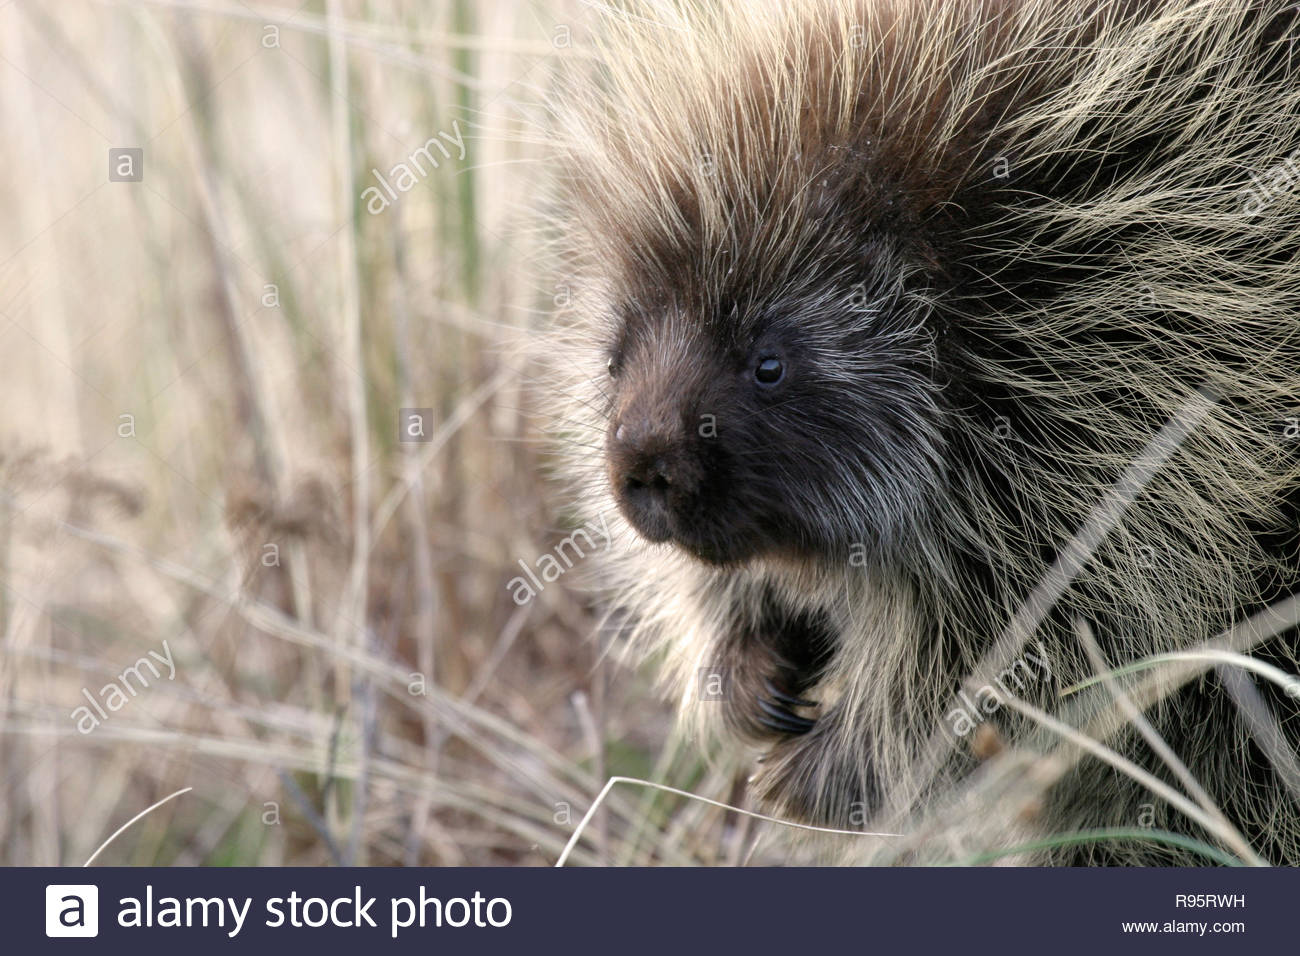 North American porcupine (Erethizon dorsatum), Ziolkouski Beach county park, Oregon, USA Stock Photo